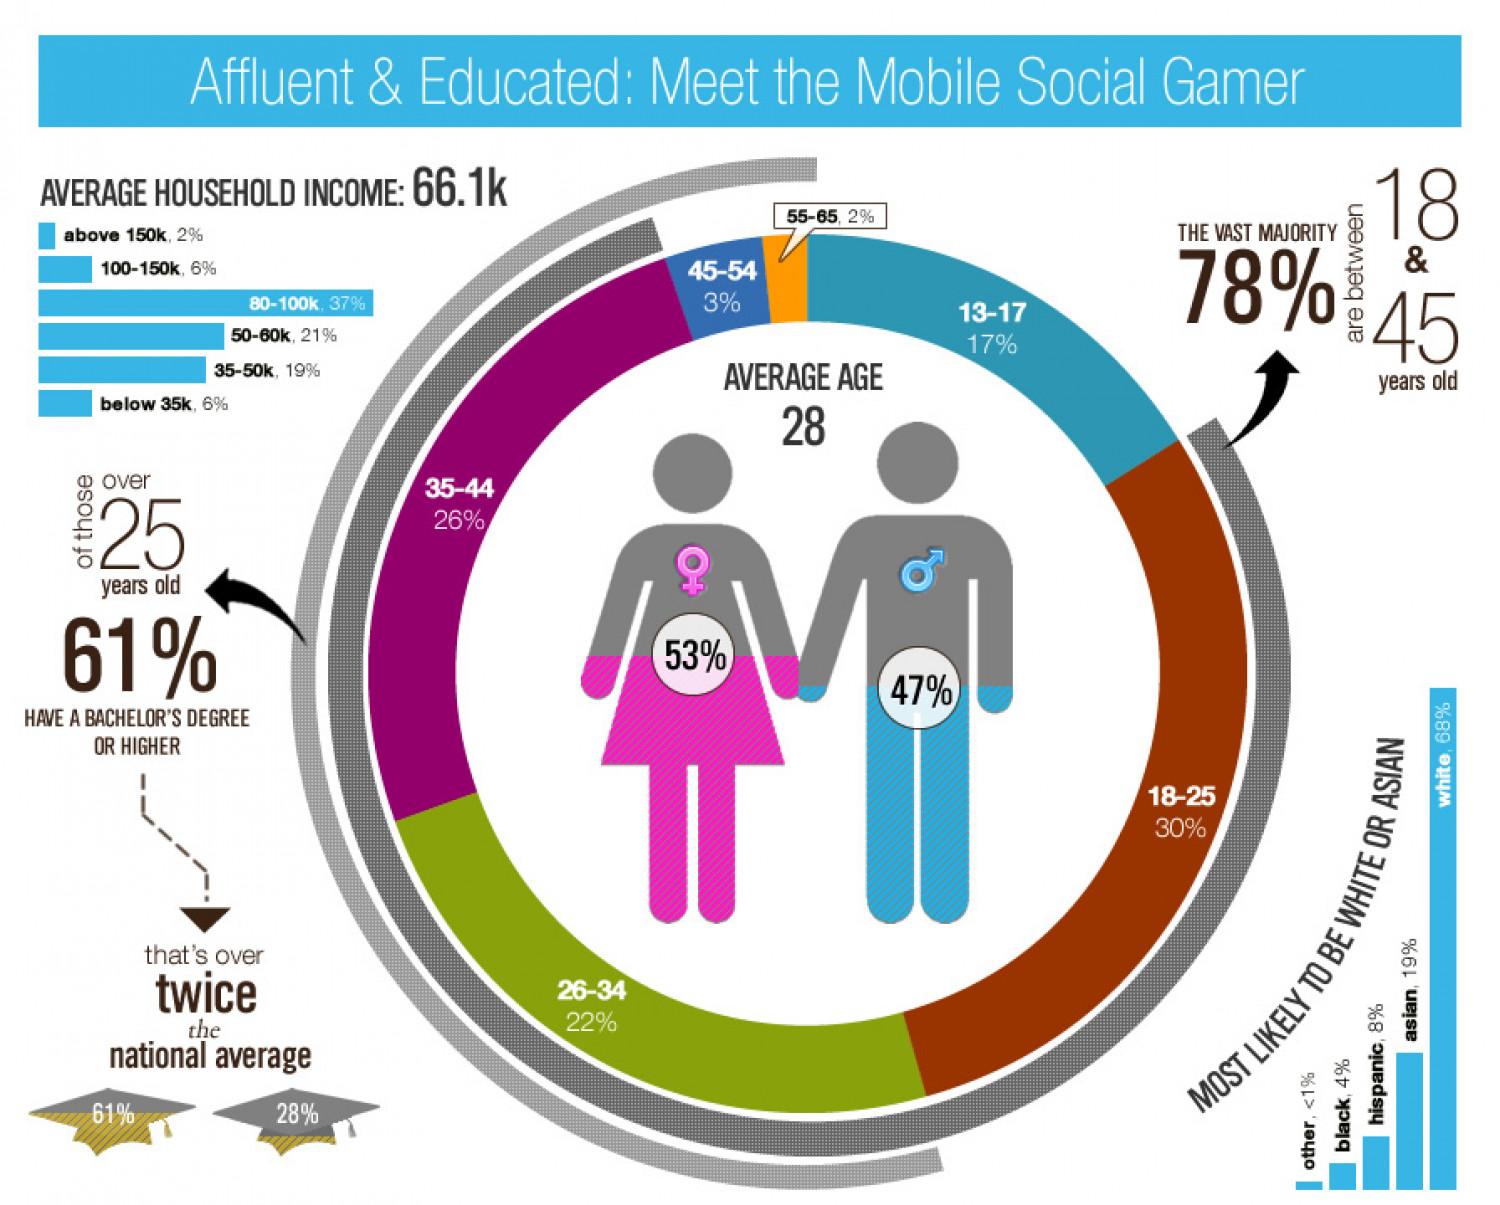 Meet the Mobile Social Gamer Infographic